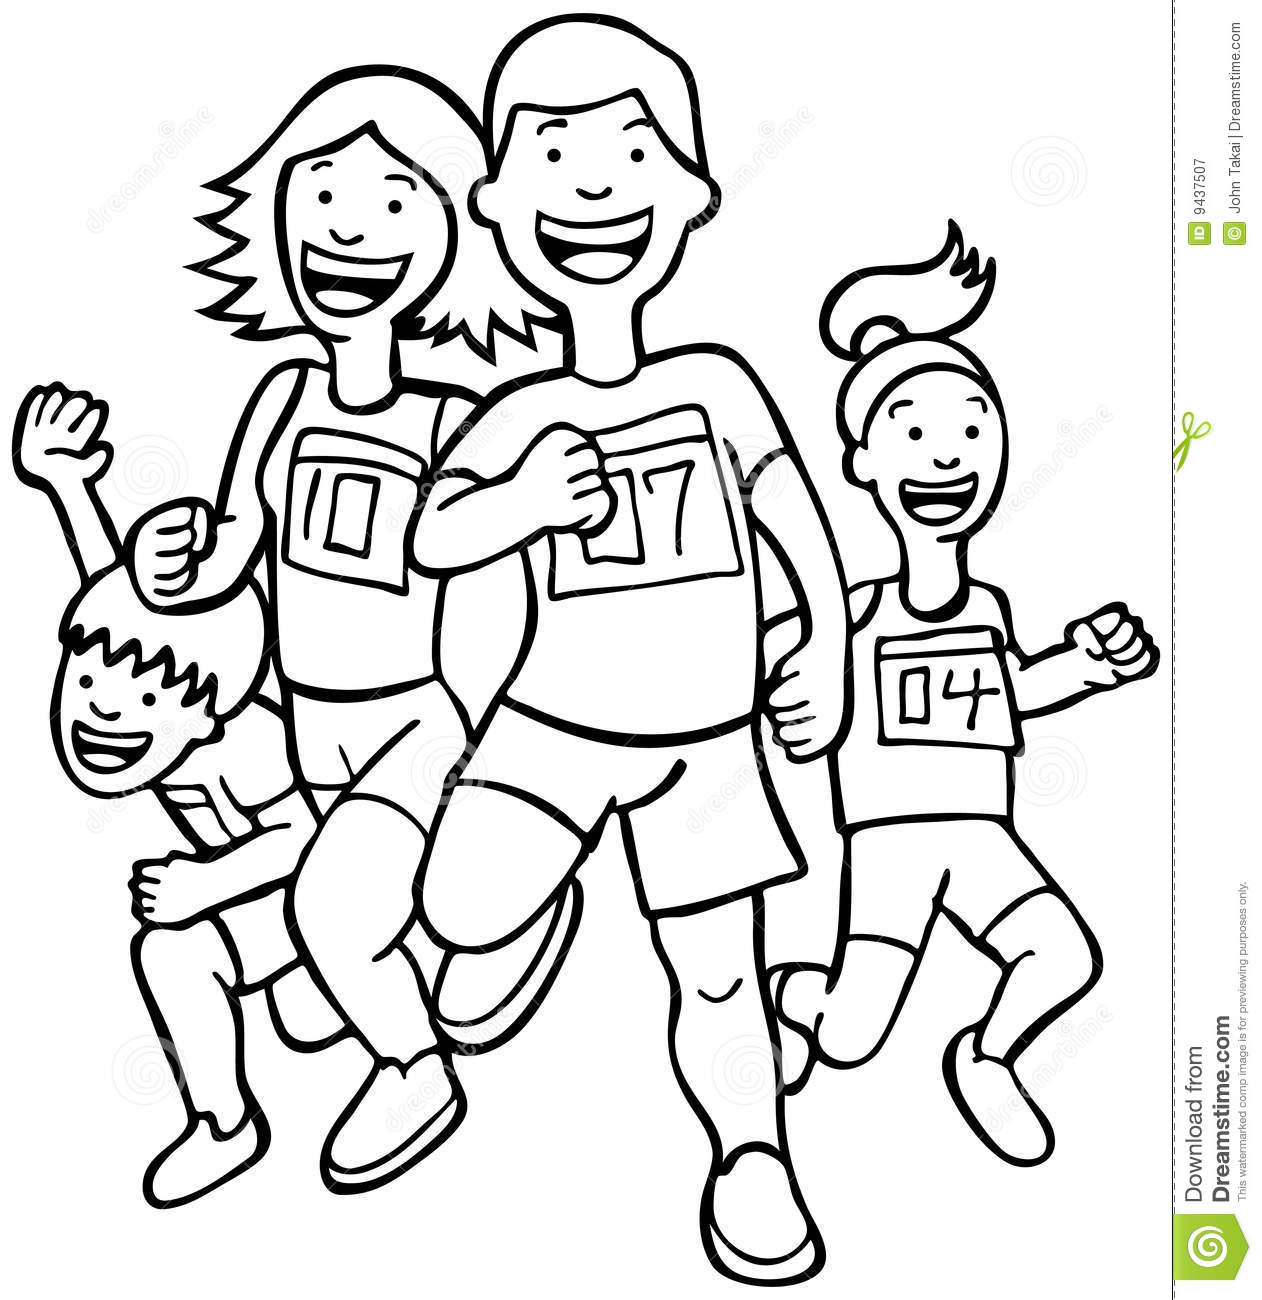 1262x1300 Race Clipart Black And White